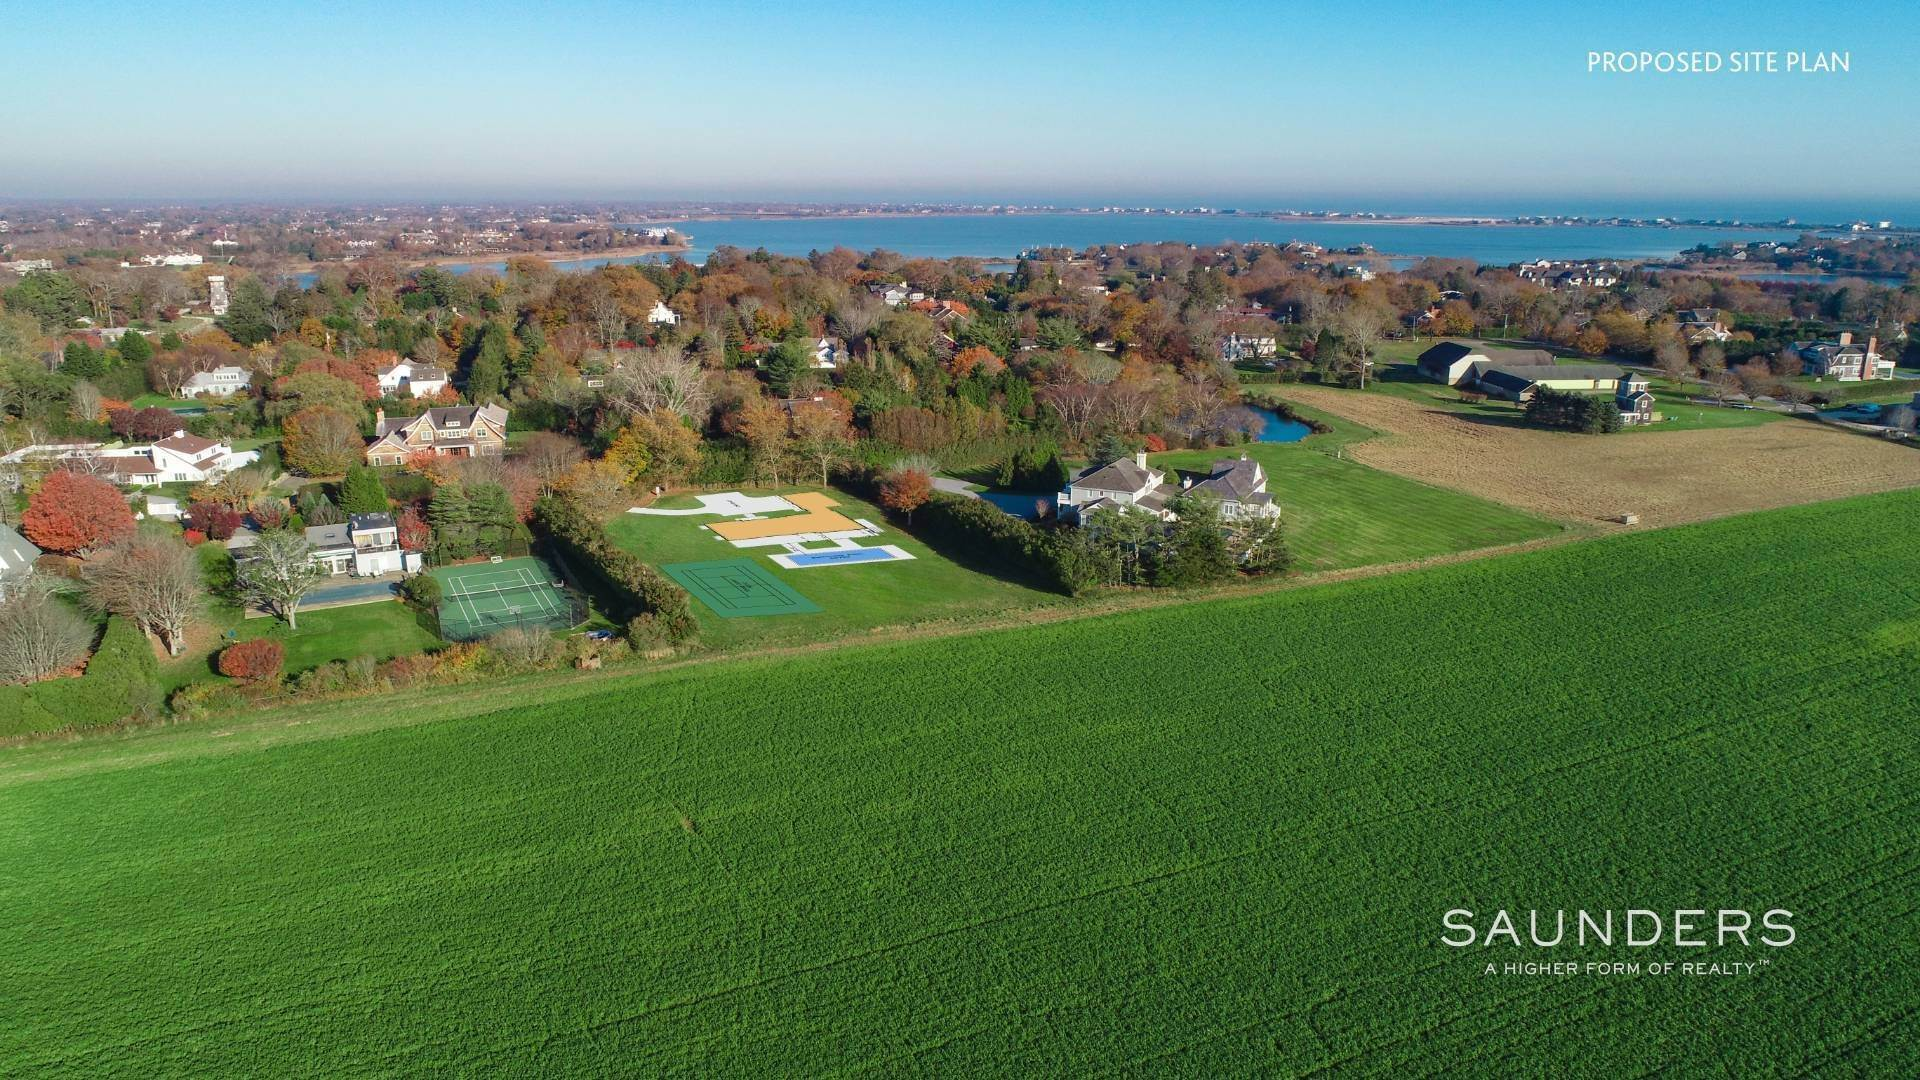 Single Family Homes for Sale at New Construction - Water Mill South - Pool, Tennis, On Reserve 37 Potato Barn Road, Water Mill, Southampton Town, NY 11976